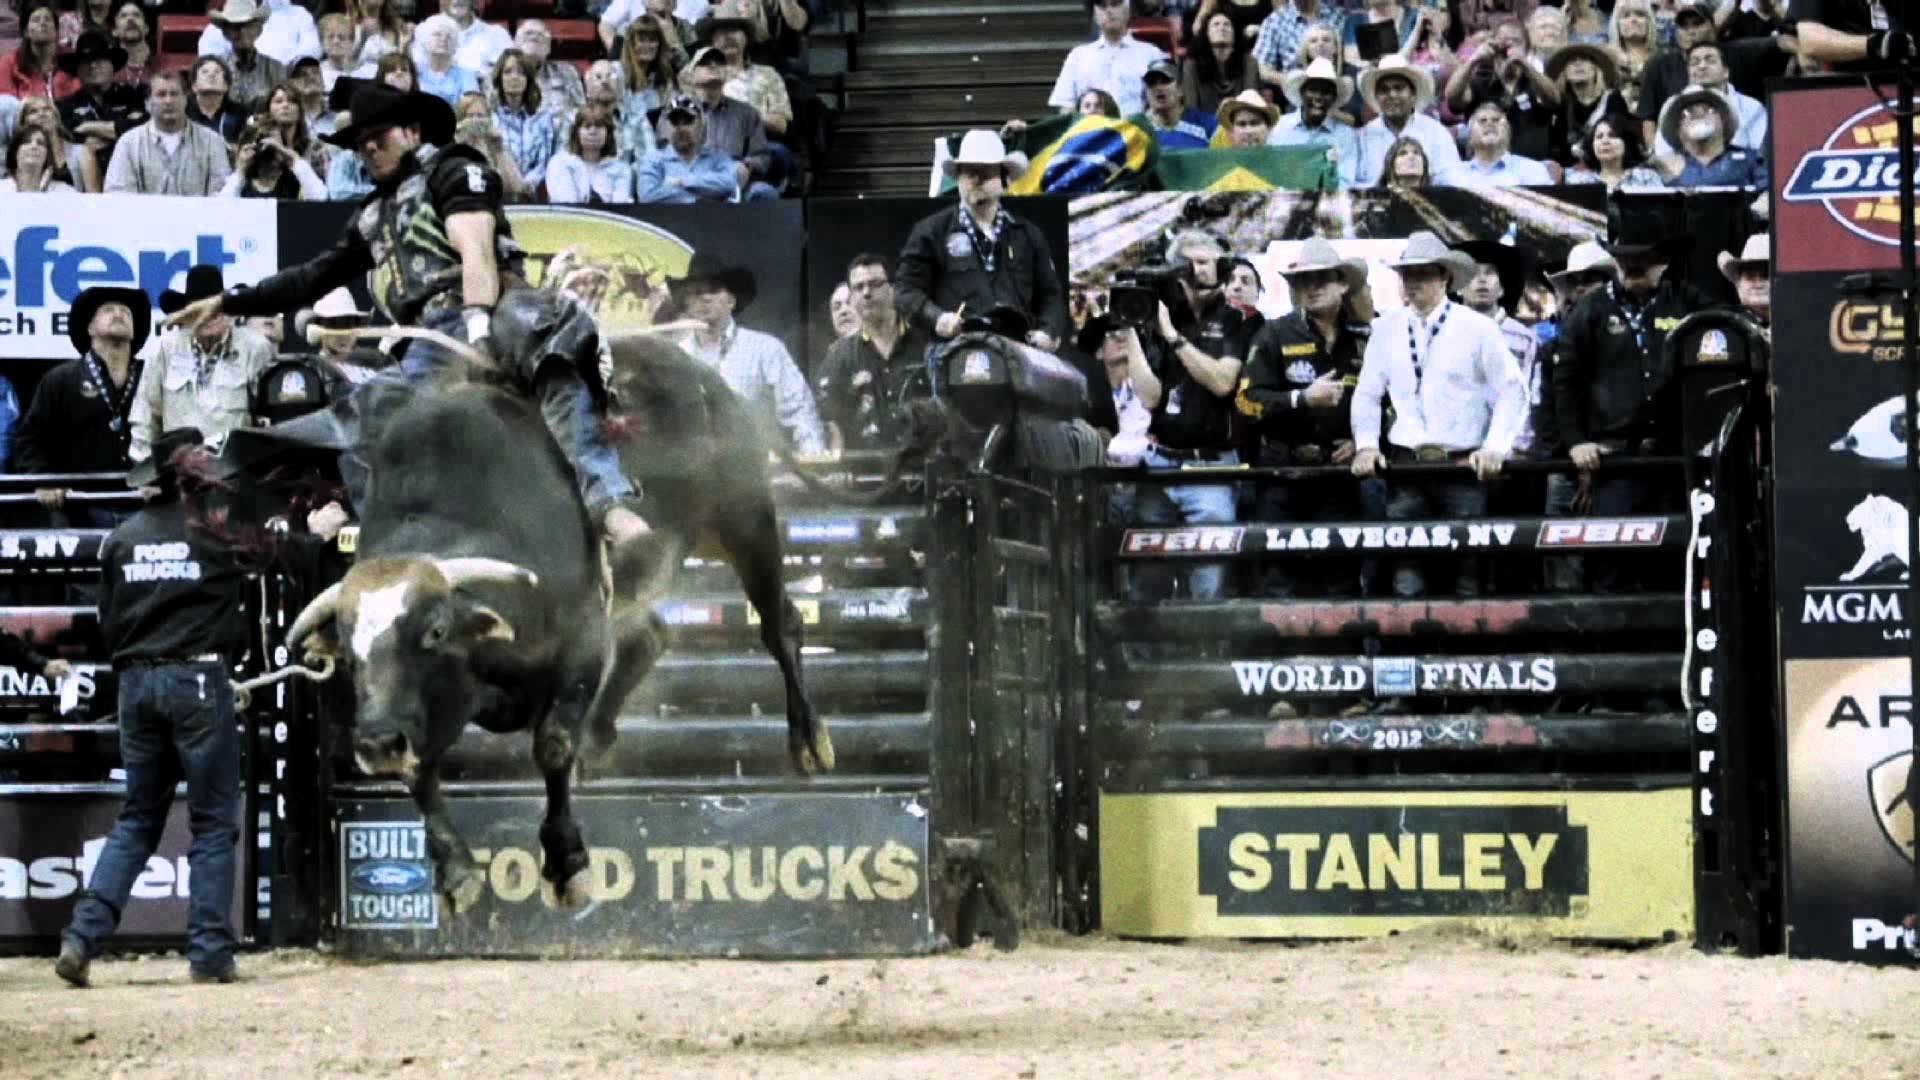 Res: 1920x1080, Images For > Pbr Bull Riding 2014